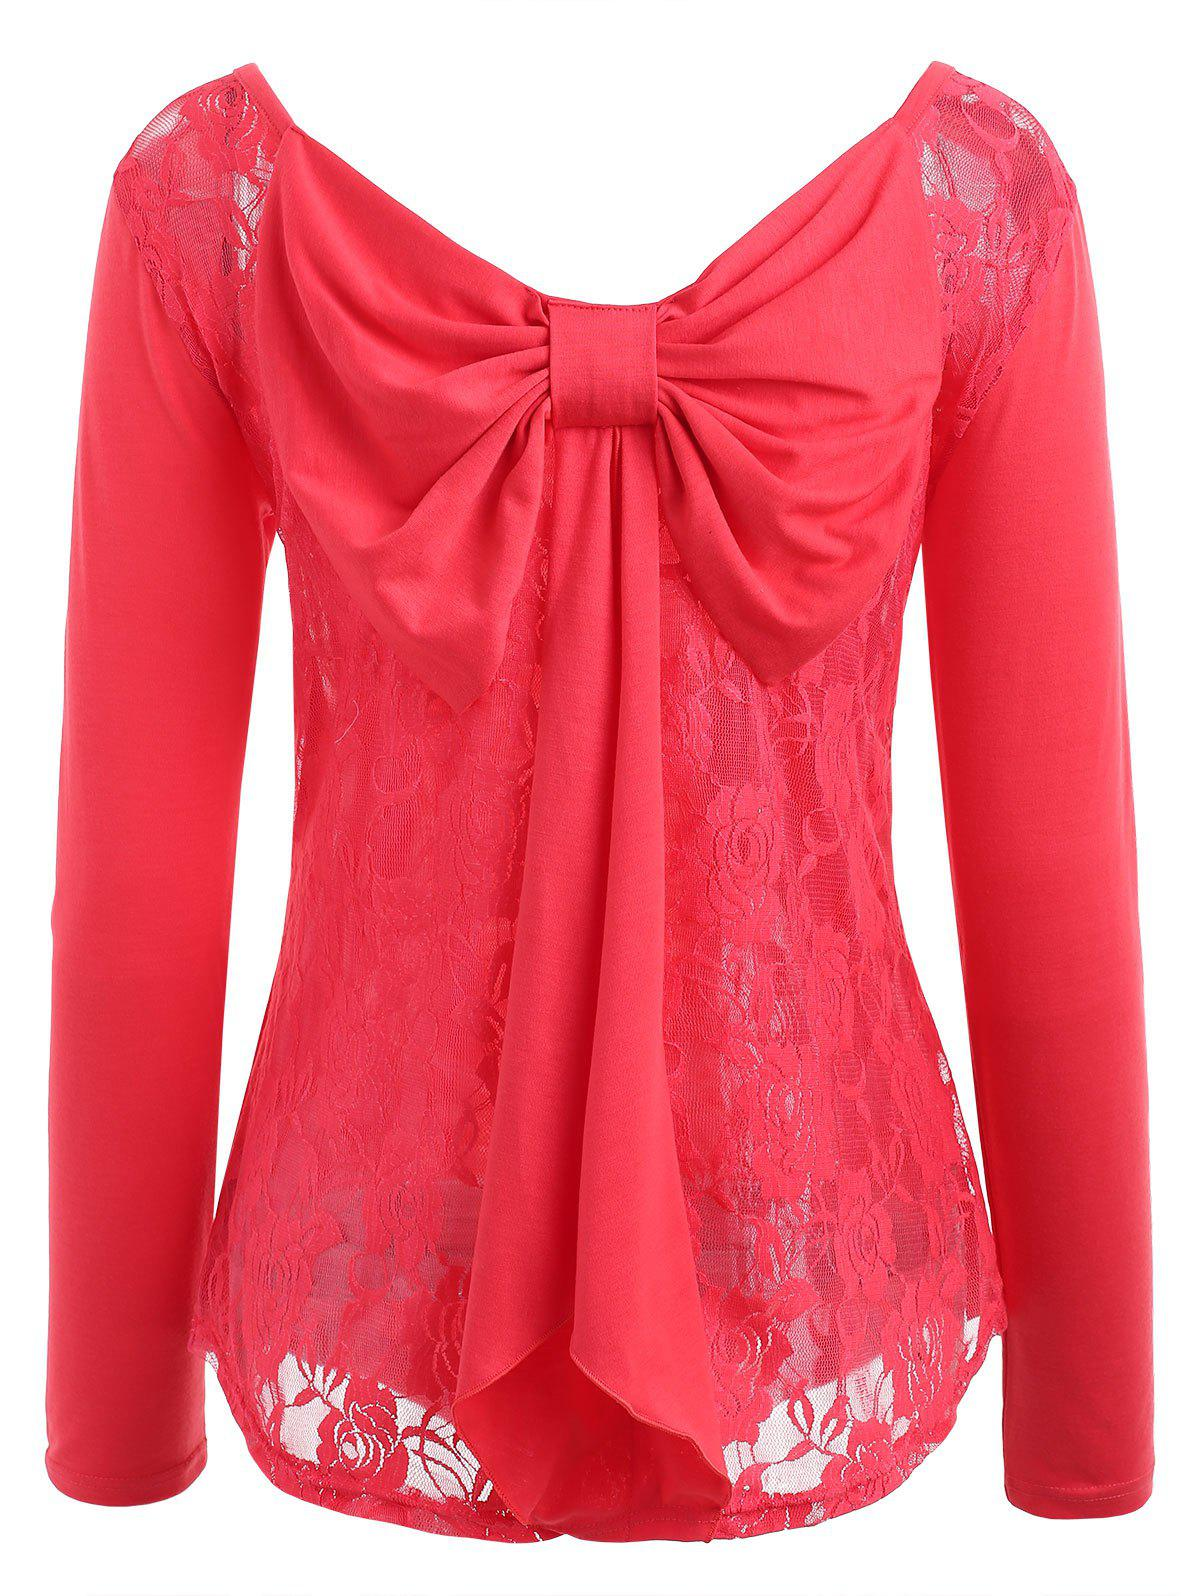 Buy Floral Lace Bow Tie Top